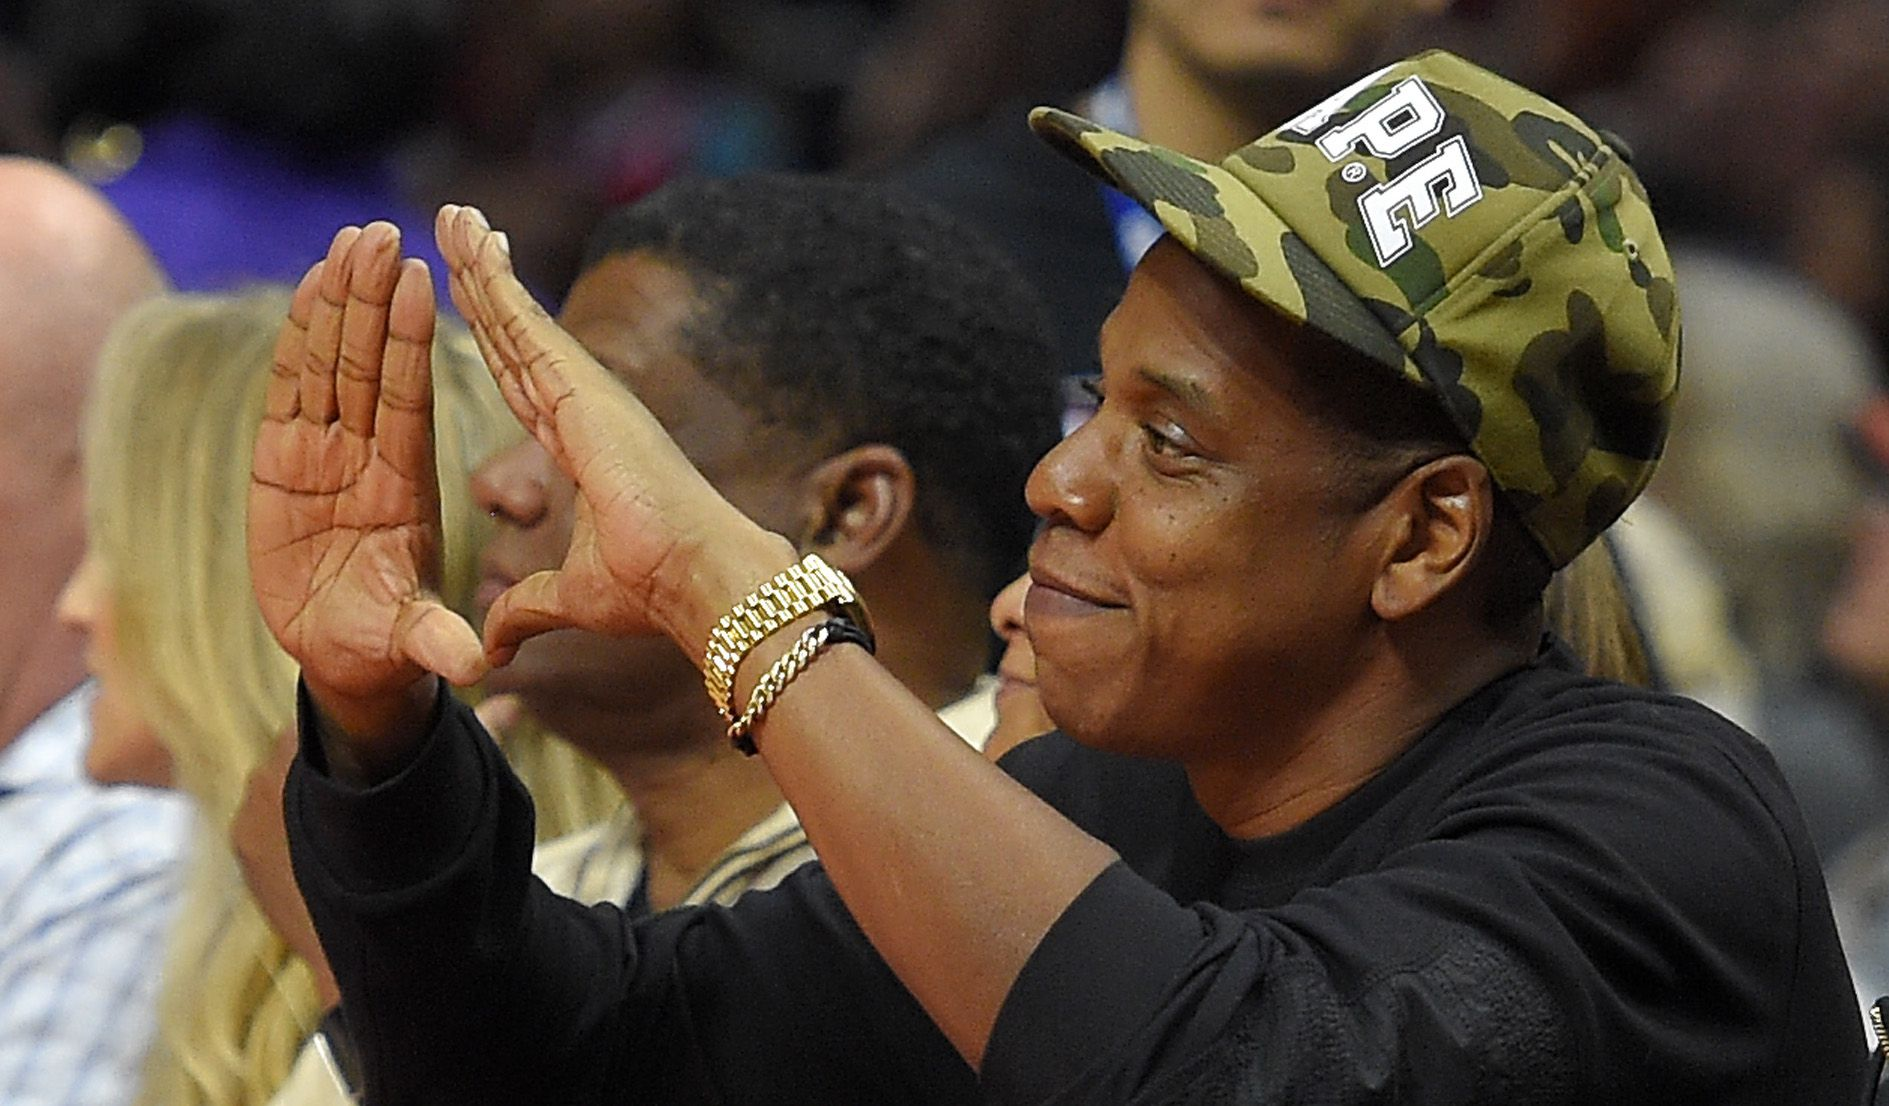 Rapper Jay-Z gestures during the first half of an NBA basketball game between the Los Angeles Clippers and the Cleveland Cavaliers, Friday, Jan. 16, 2015, in Los Angeles.